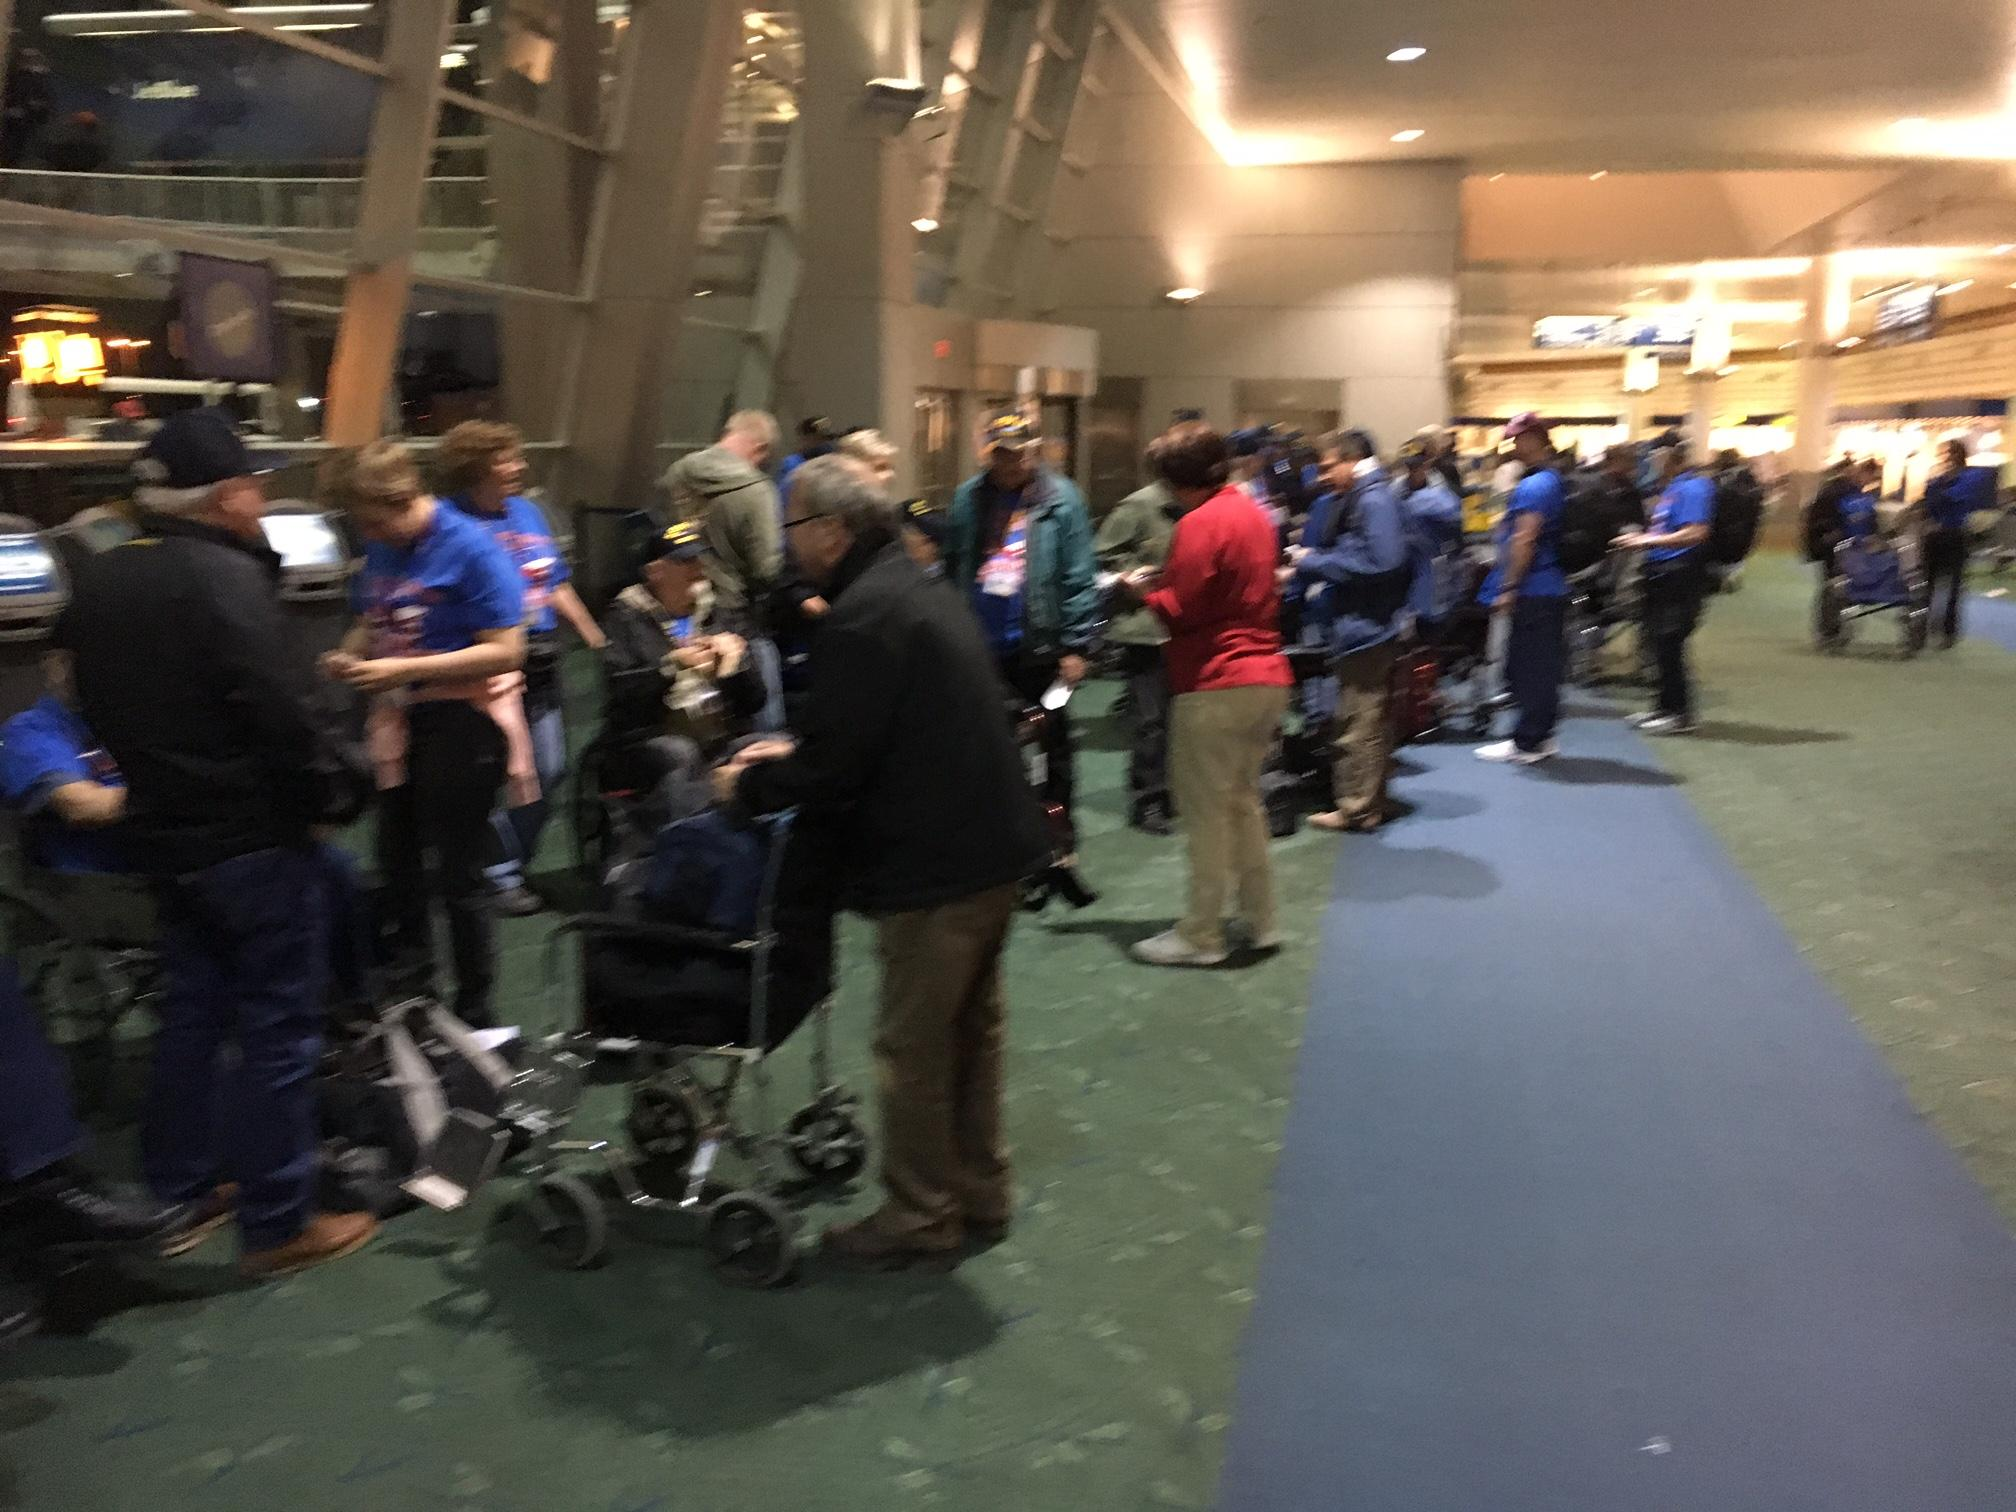 Three dozens veterans who served in World War II, Korea and Vietnam left Friday, May 12, on an Honor Flight to Washington, D.C. KVAL News anchor David Walker and photojournalist Loren Ruark are with them. Watch #LiveOnKVAL kval.com/live for live updates on the trip. (SBG)